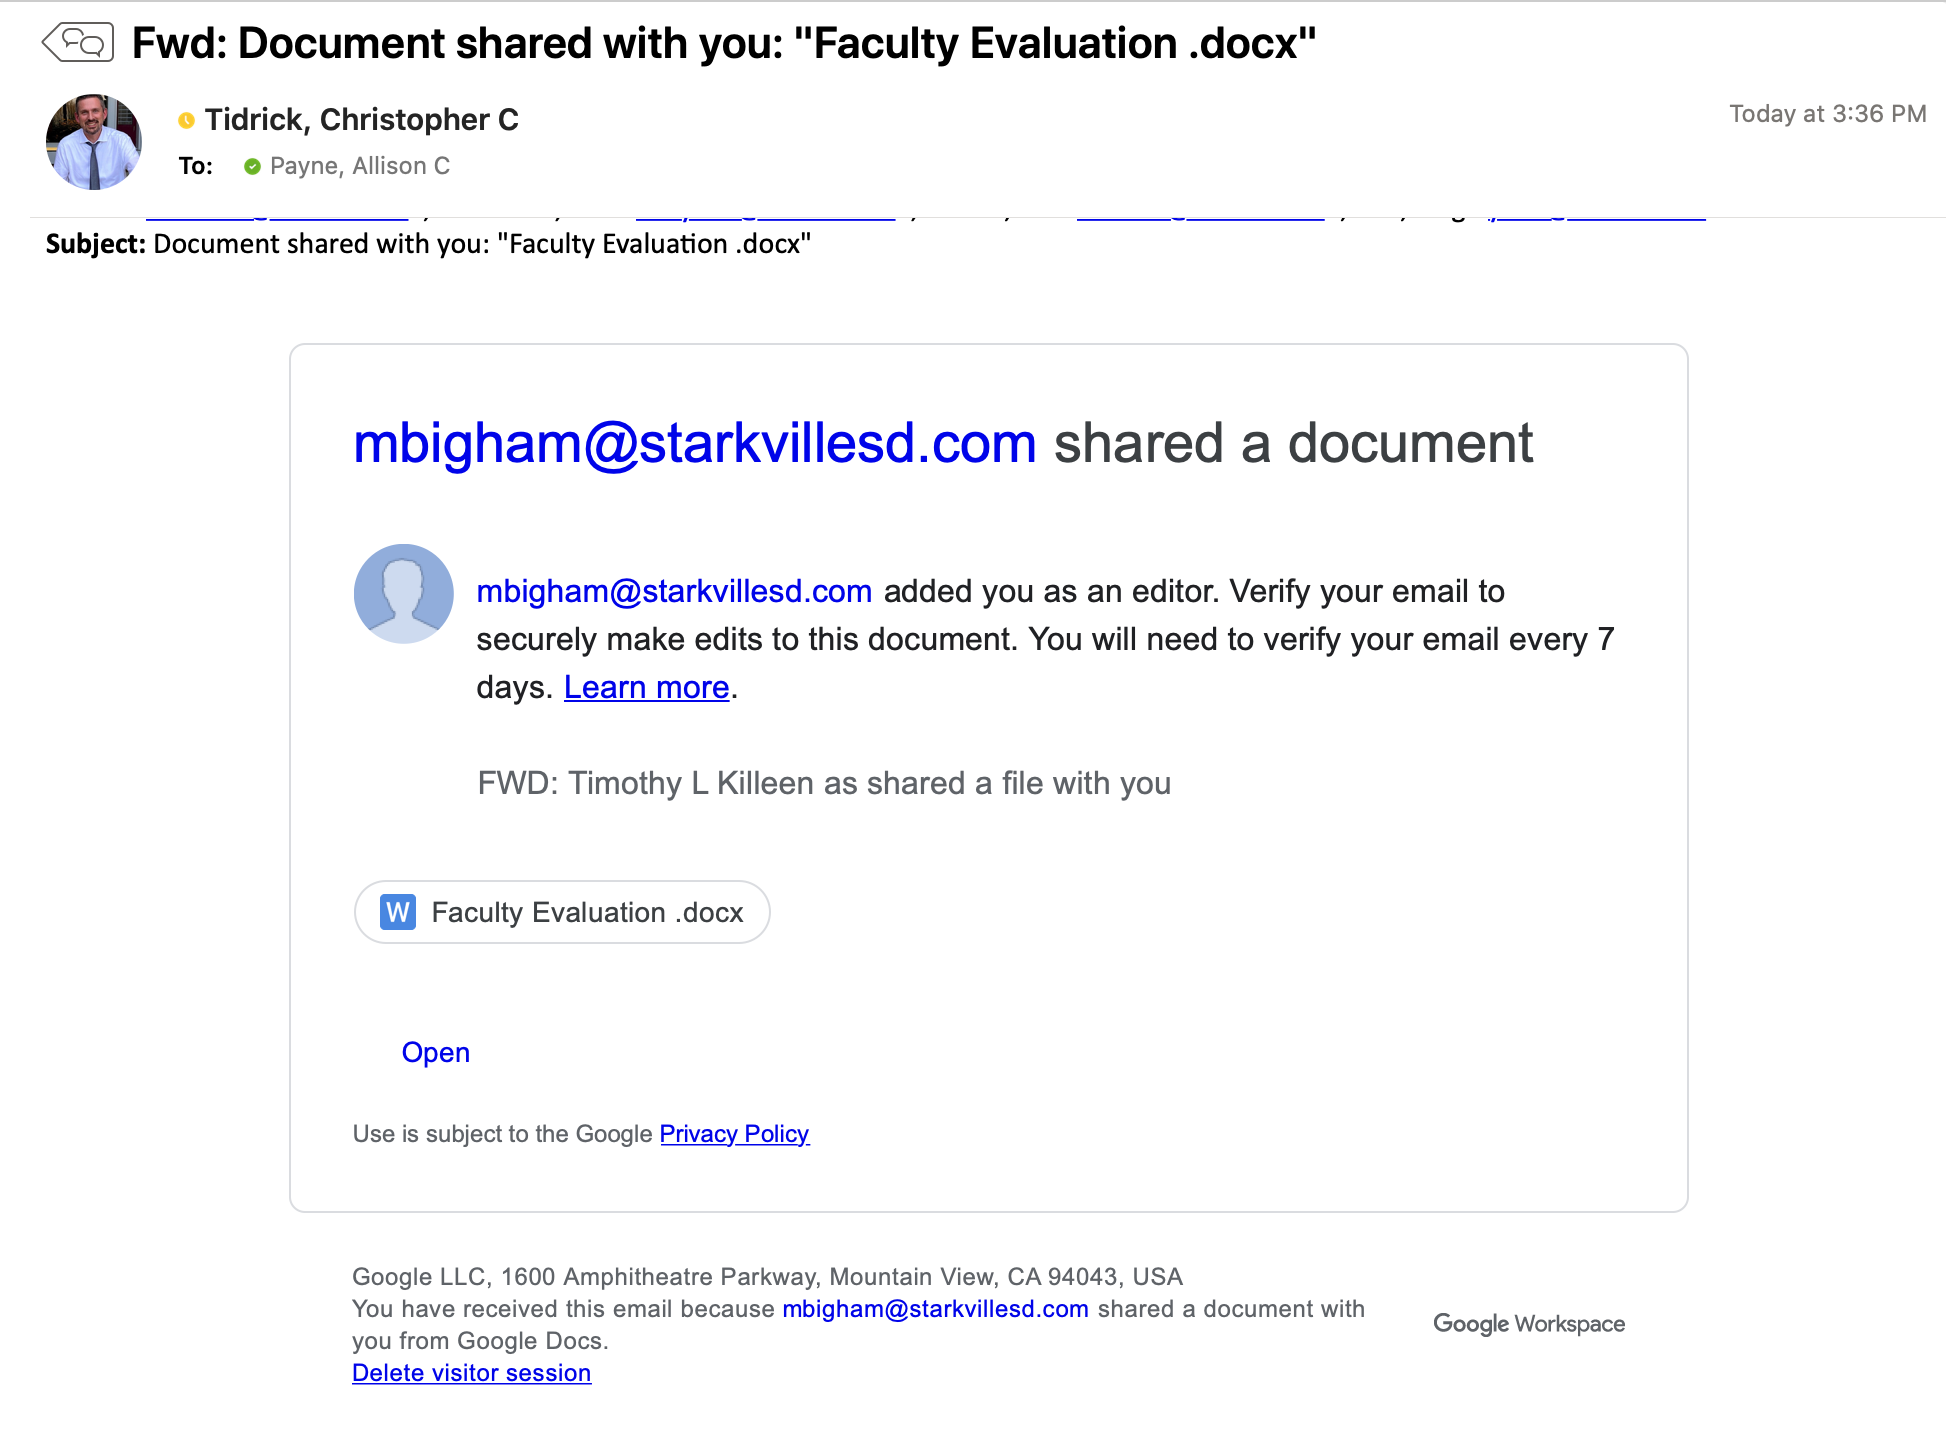 screenshot of fake google share email with link to docx faculty eval form